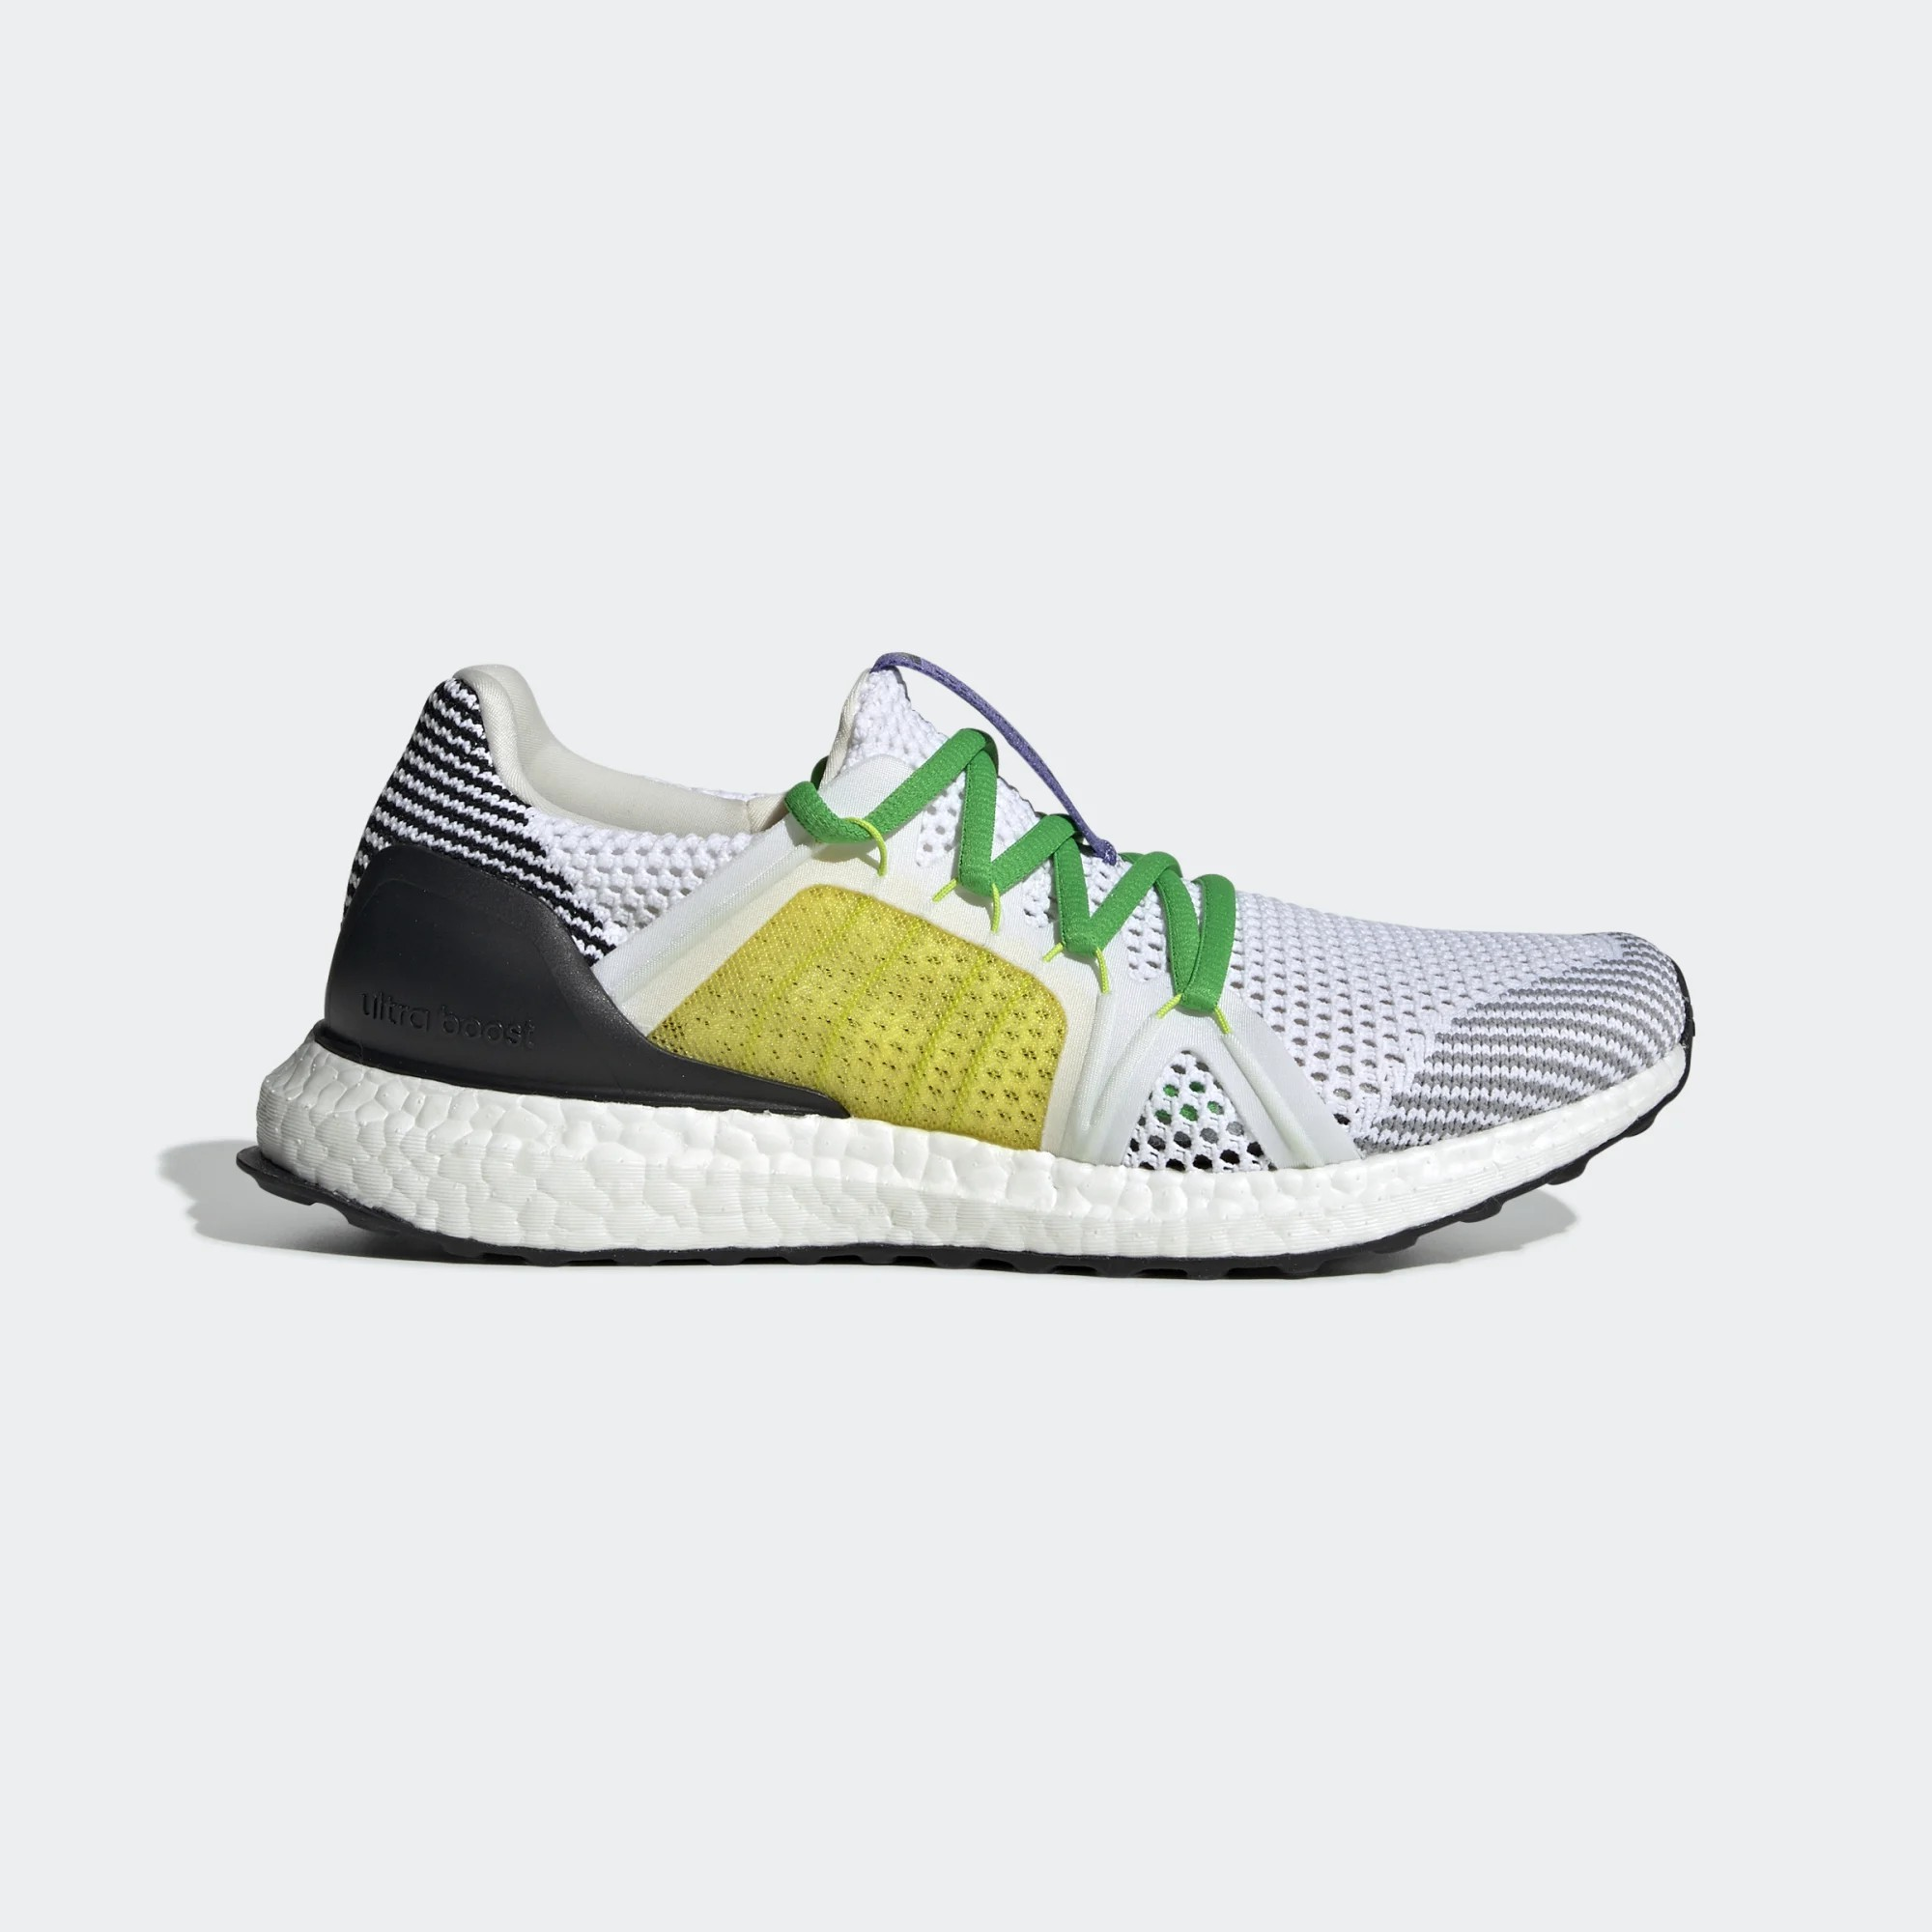 Stella McCartney x Wmns UltraBoost 'White Black' adidas F35900